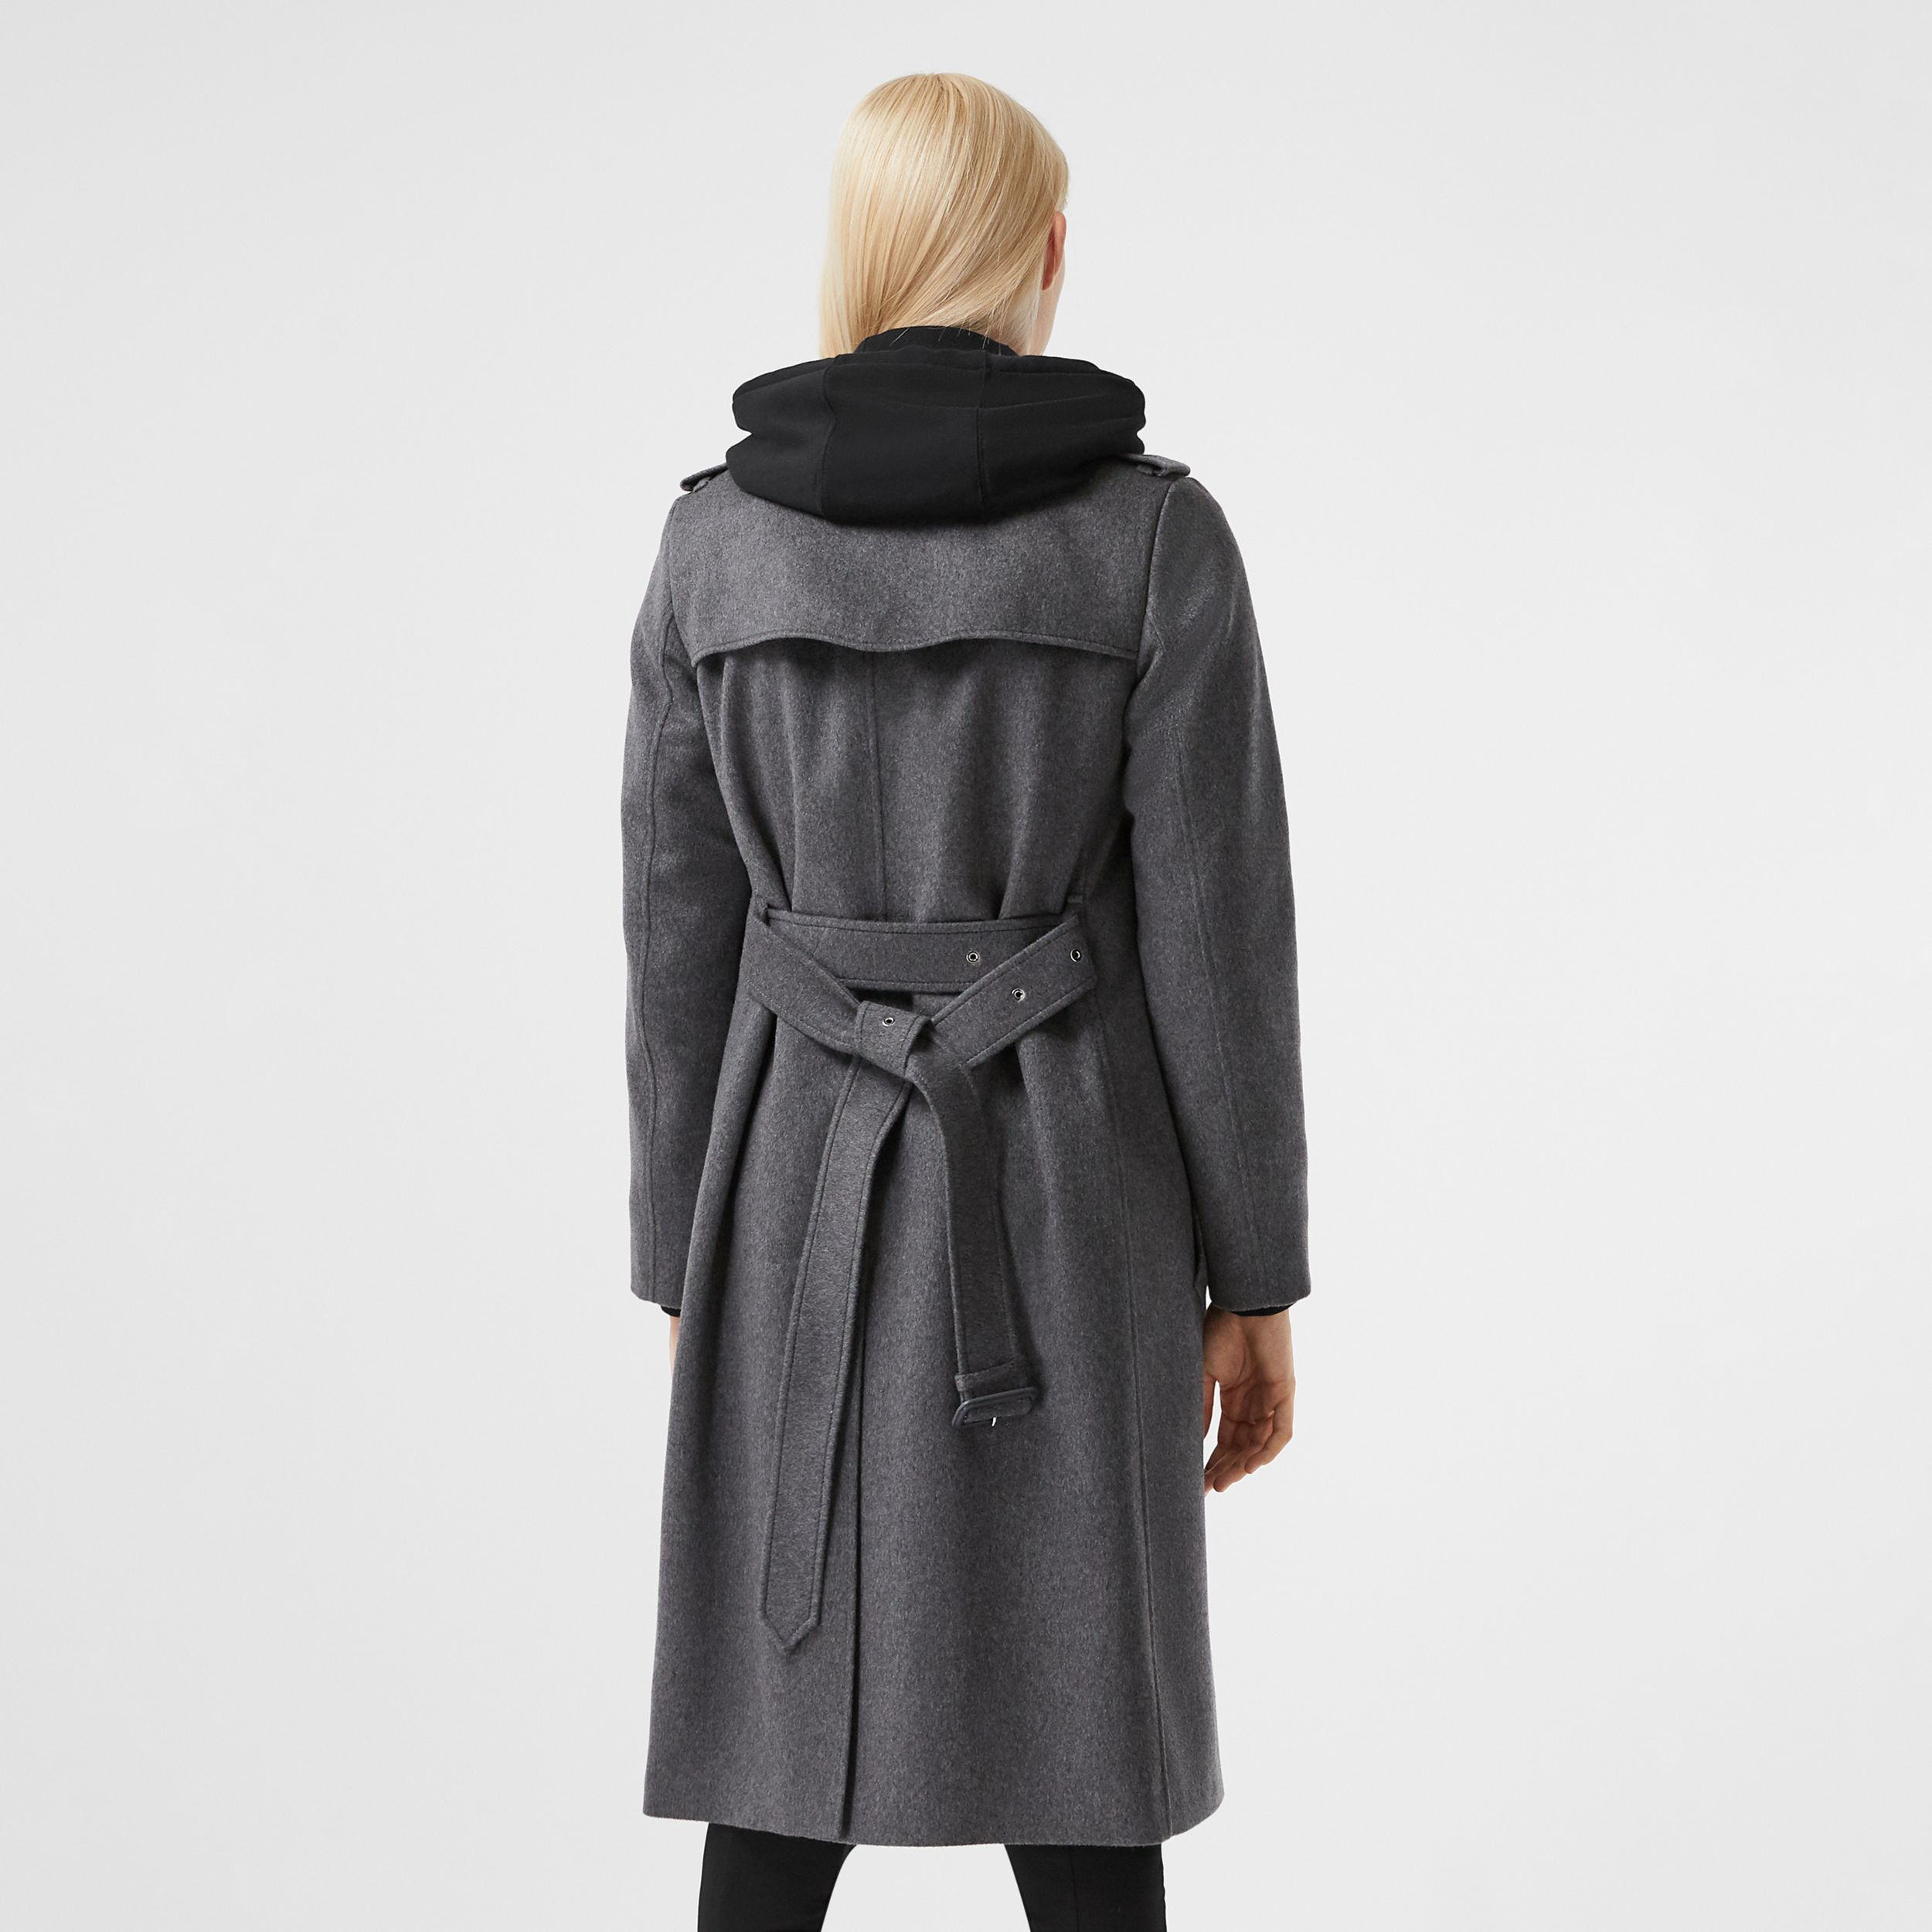 Cashmere Trench Coat in Mid Grey Melange - Women | Burberry - 3